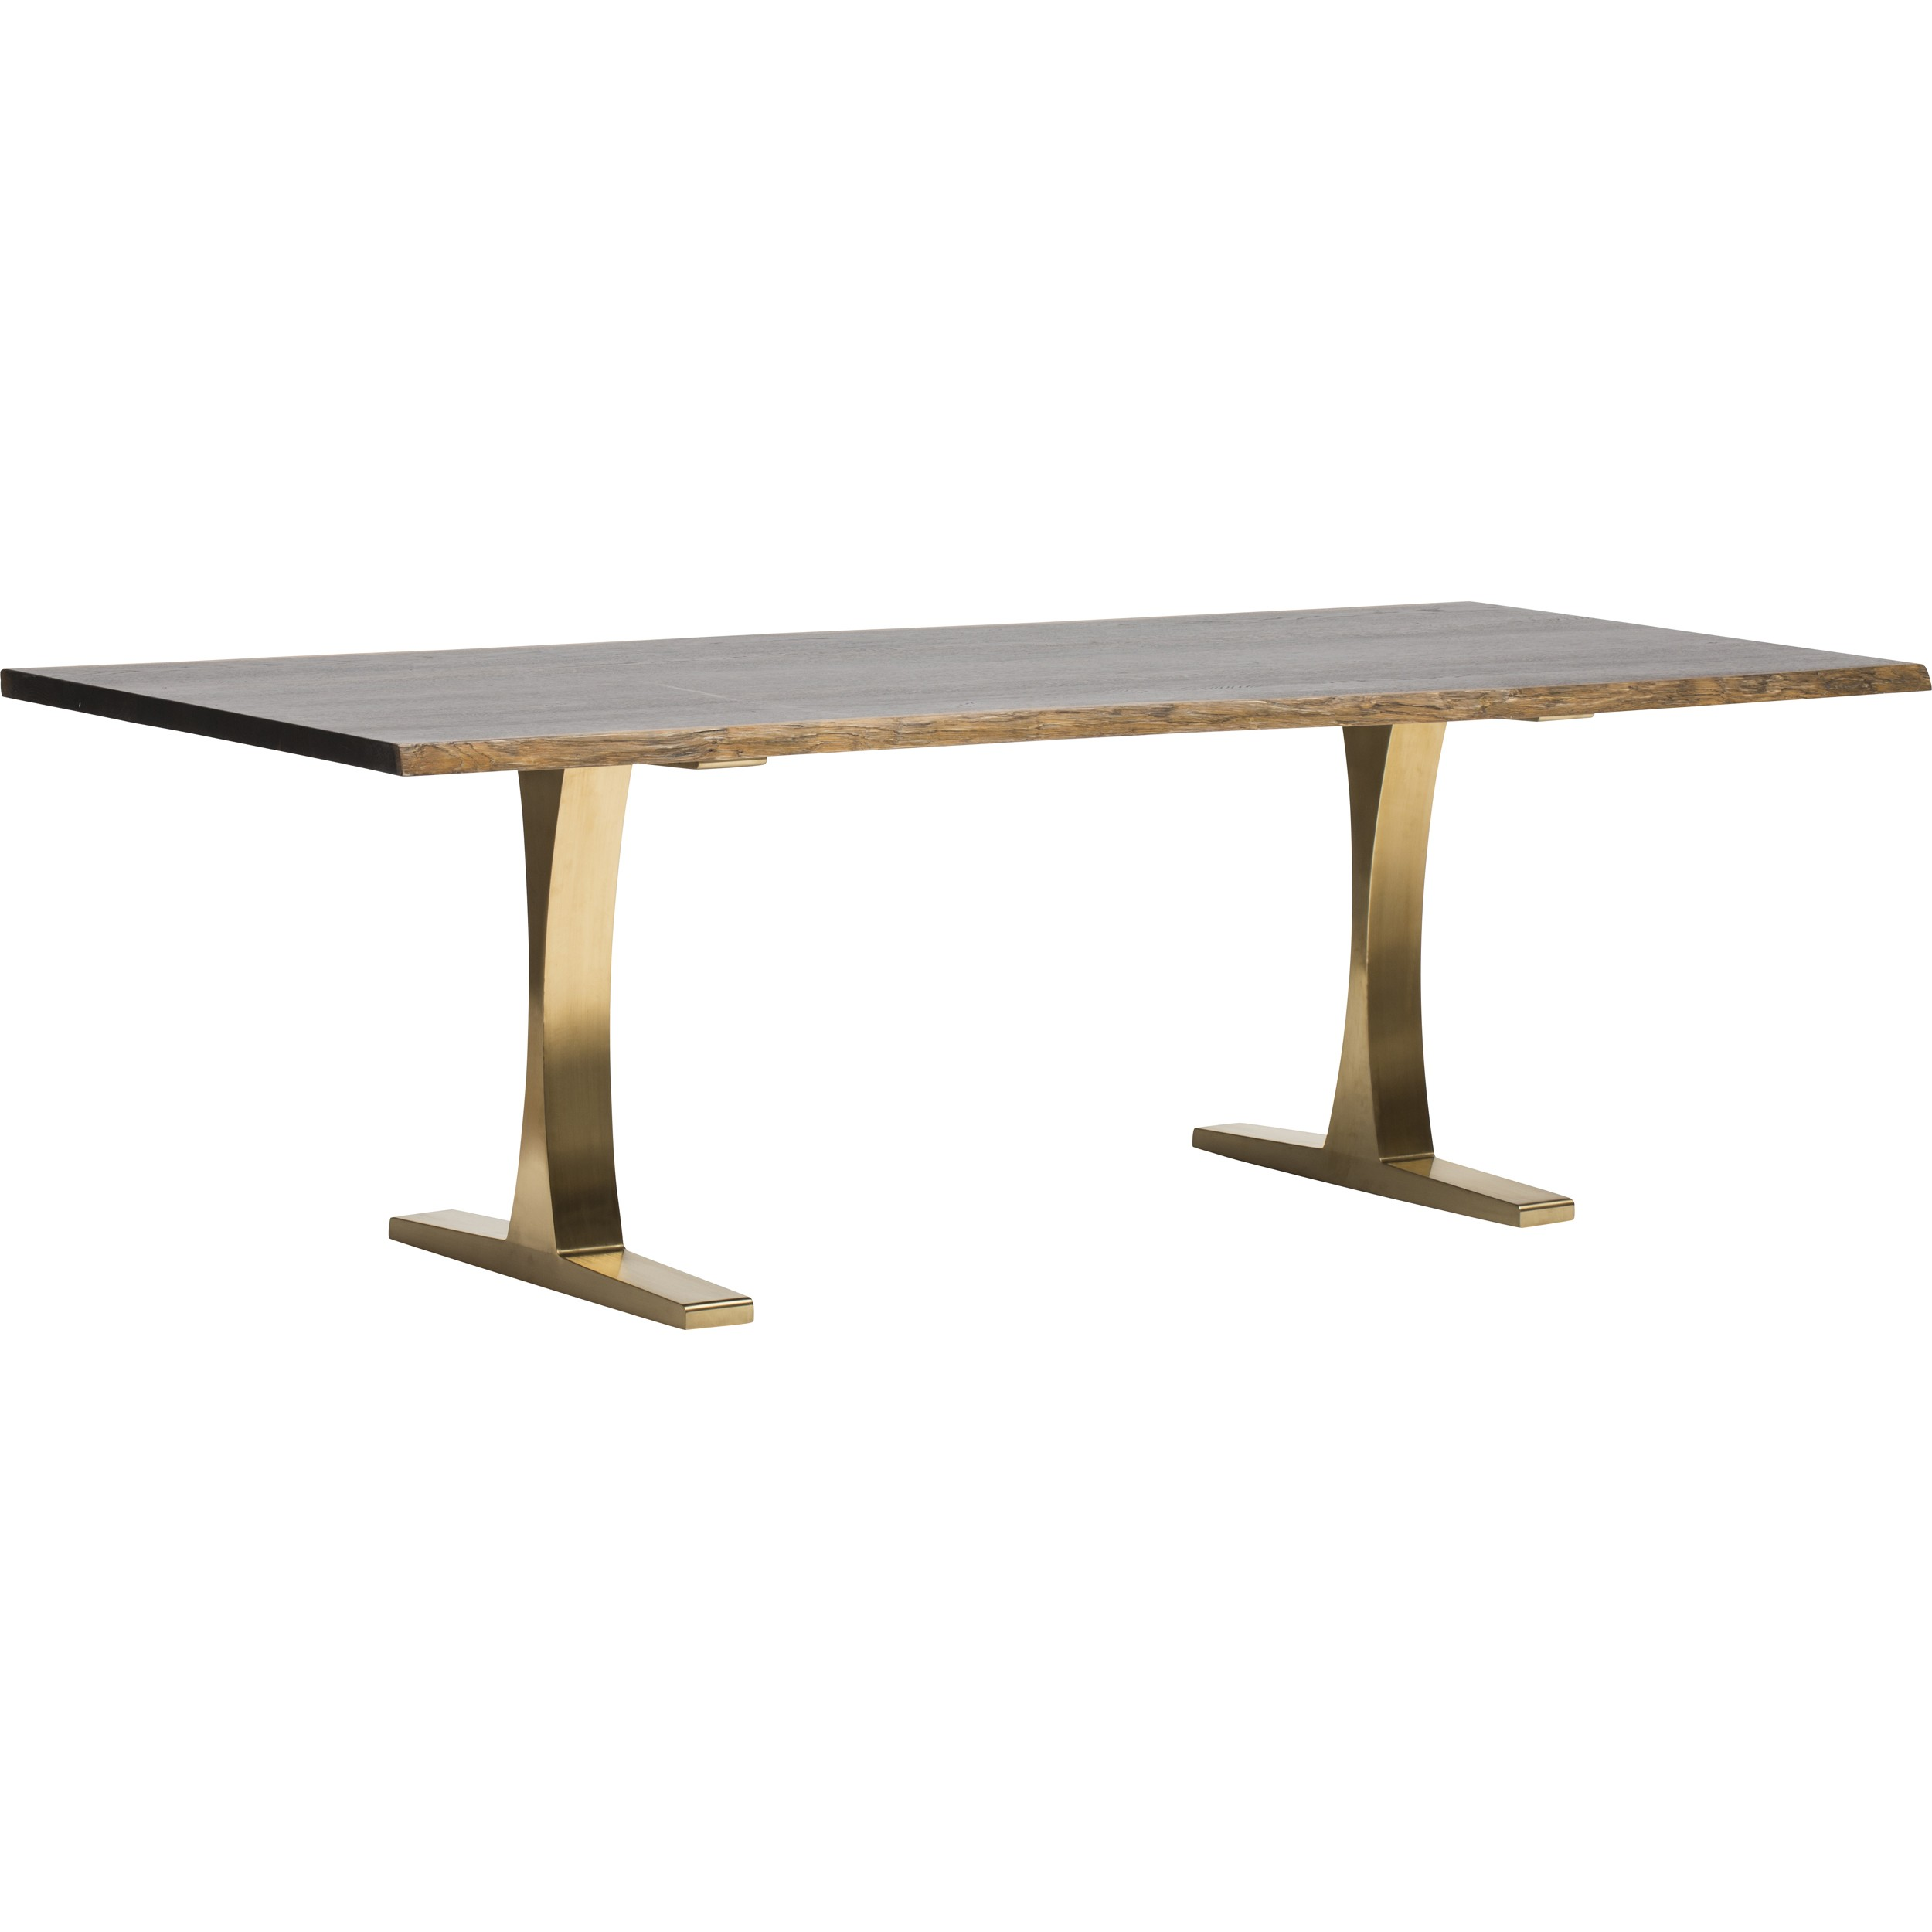 Toulon Dining Table, Brushed Gold, $2,599.